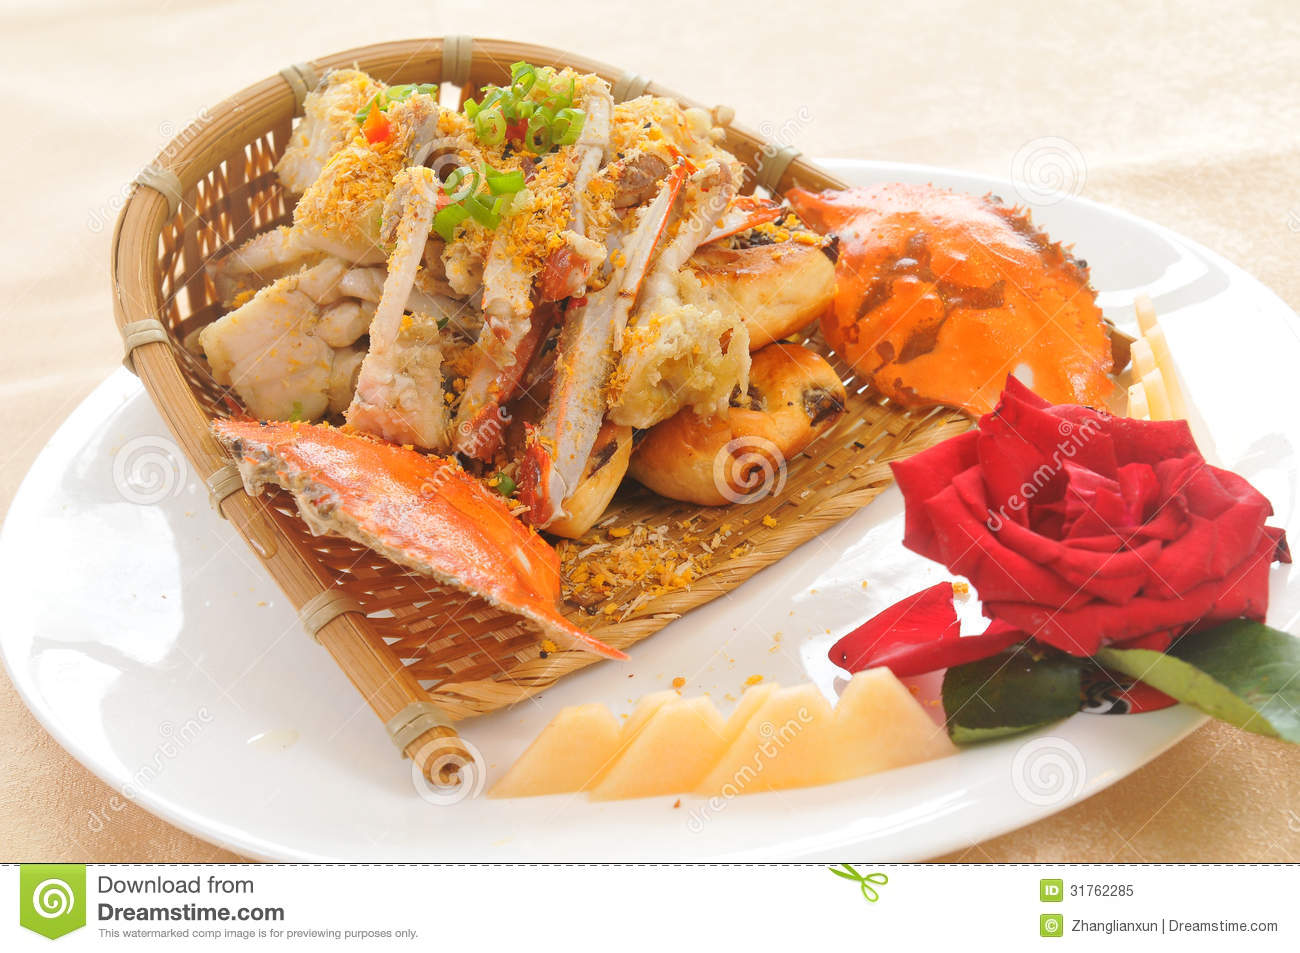 how to eat fried crab